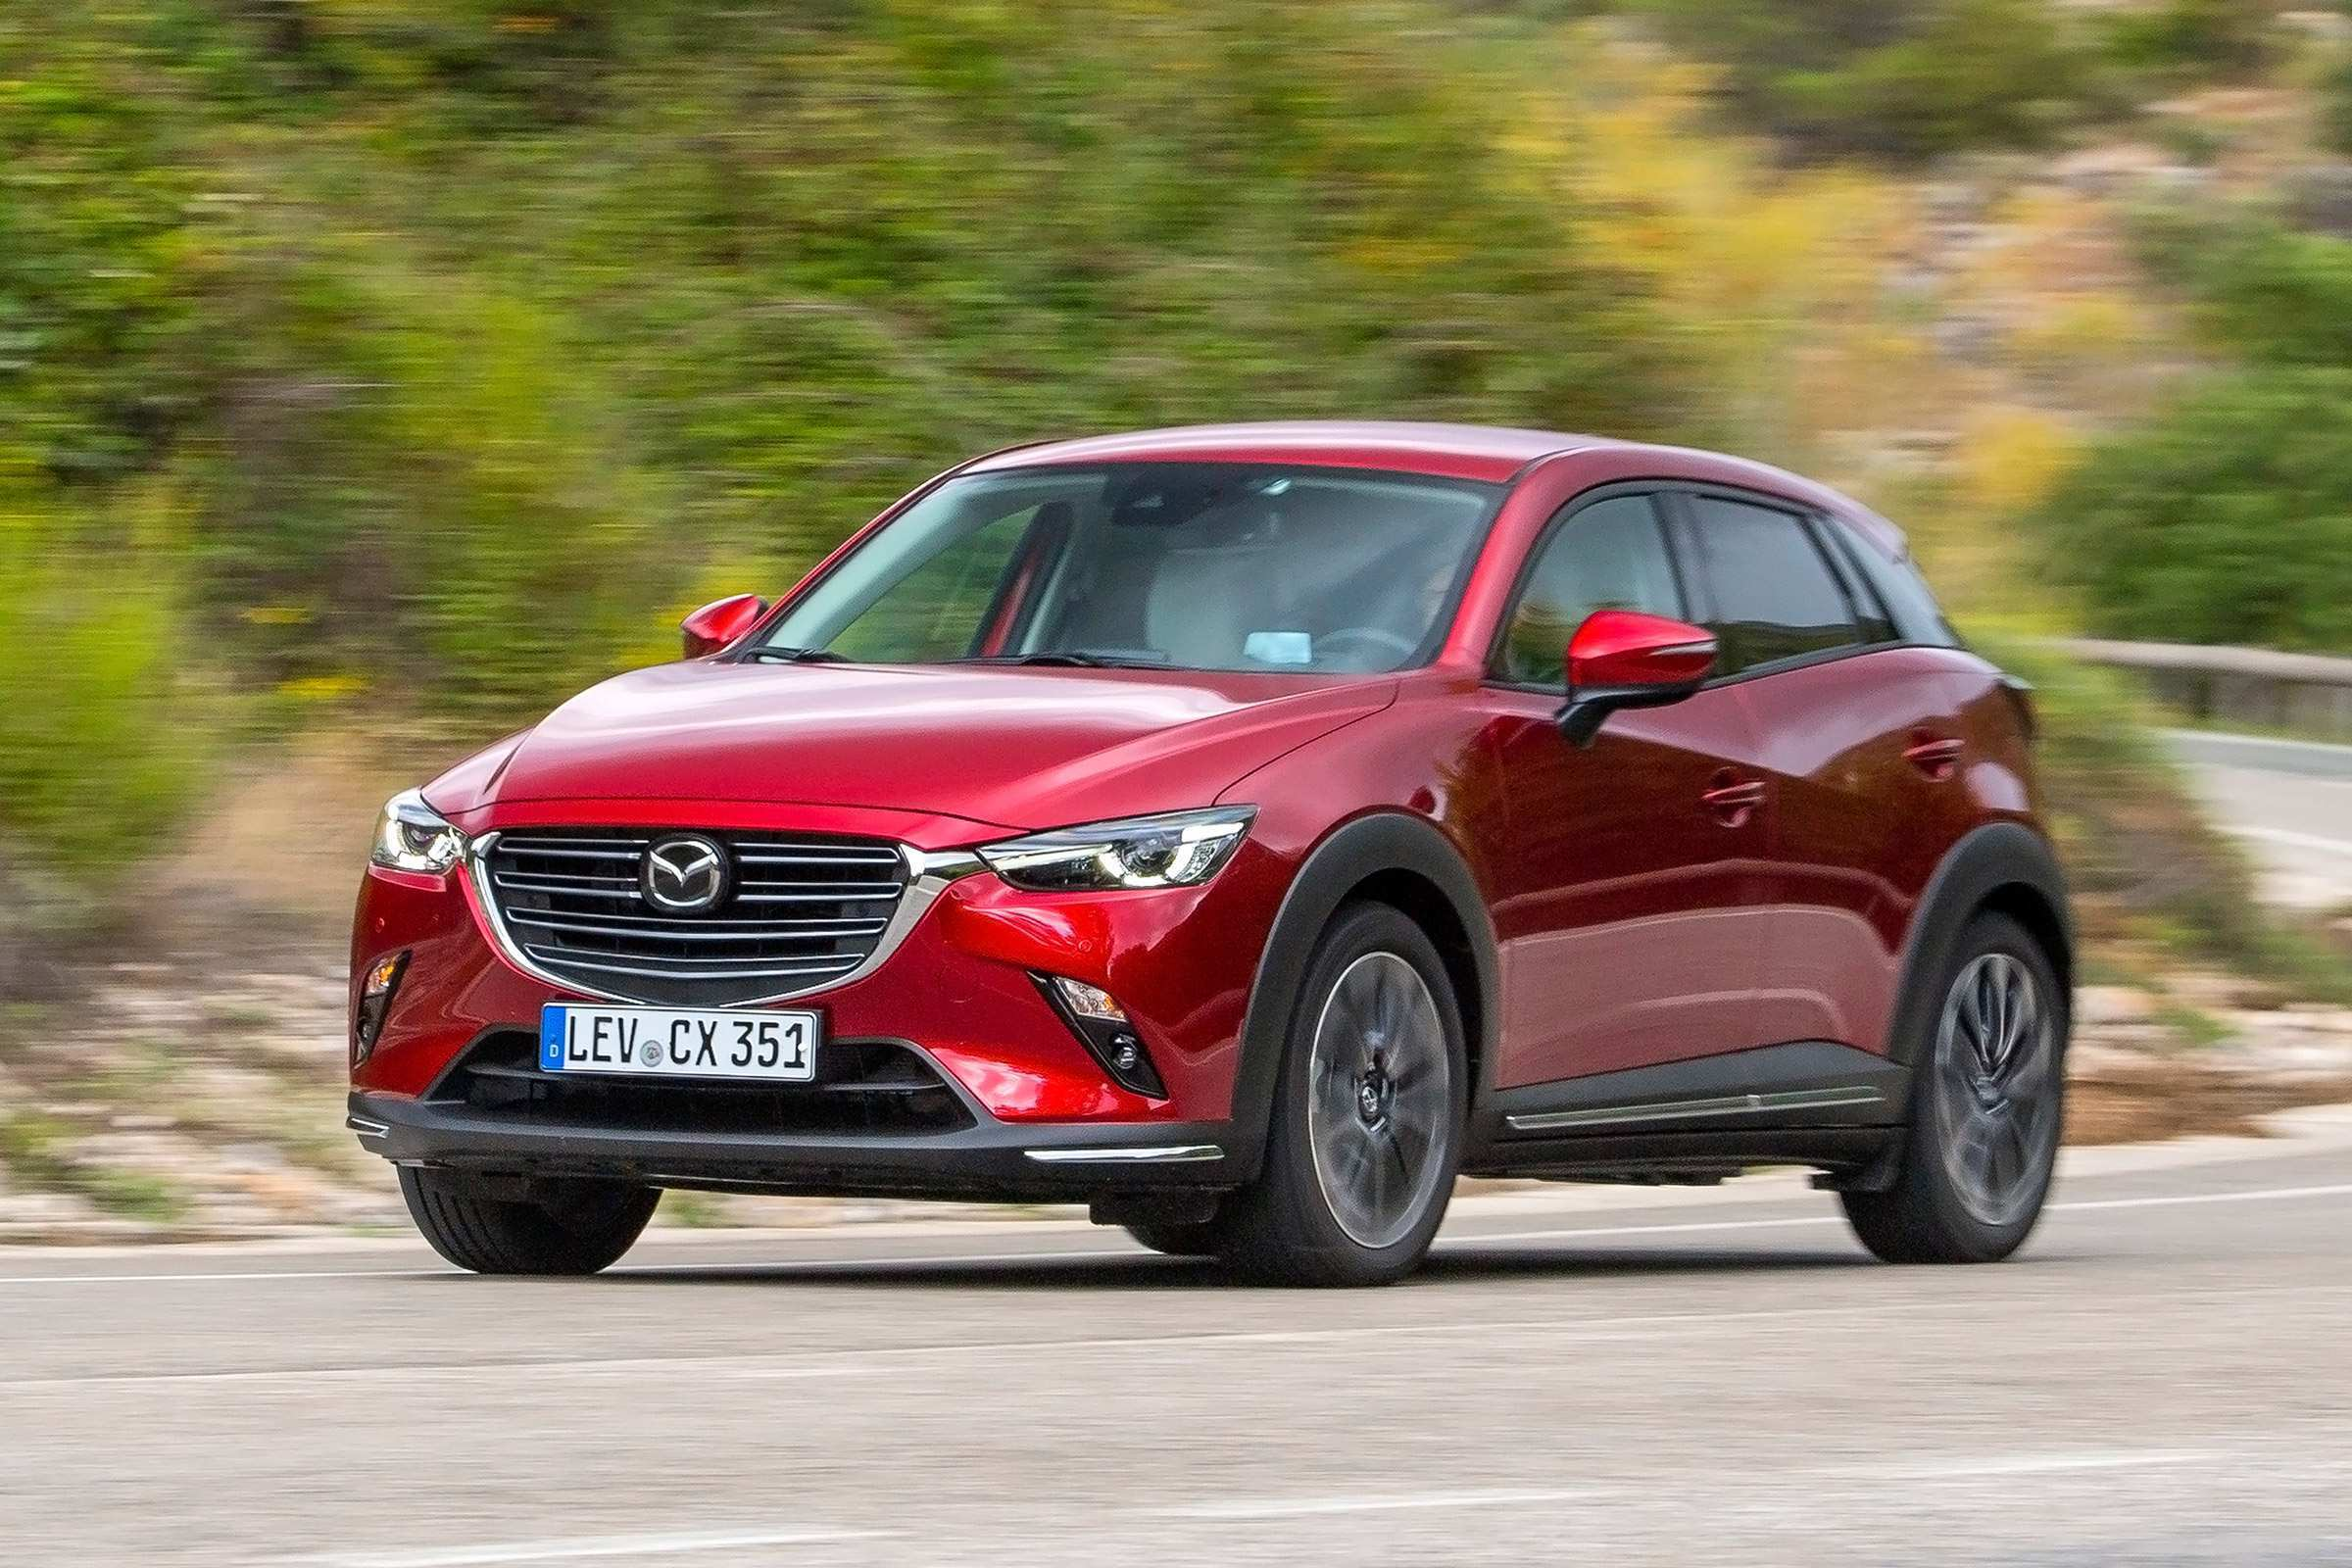 41 Gallery of Mazda 2019 Facelift New Review New Concept with Mazda 2019 Facelift New Review